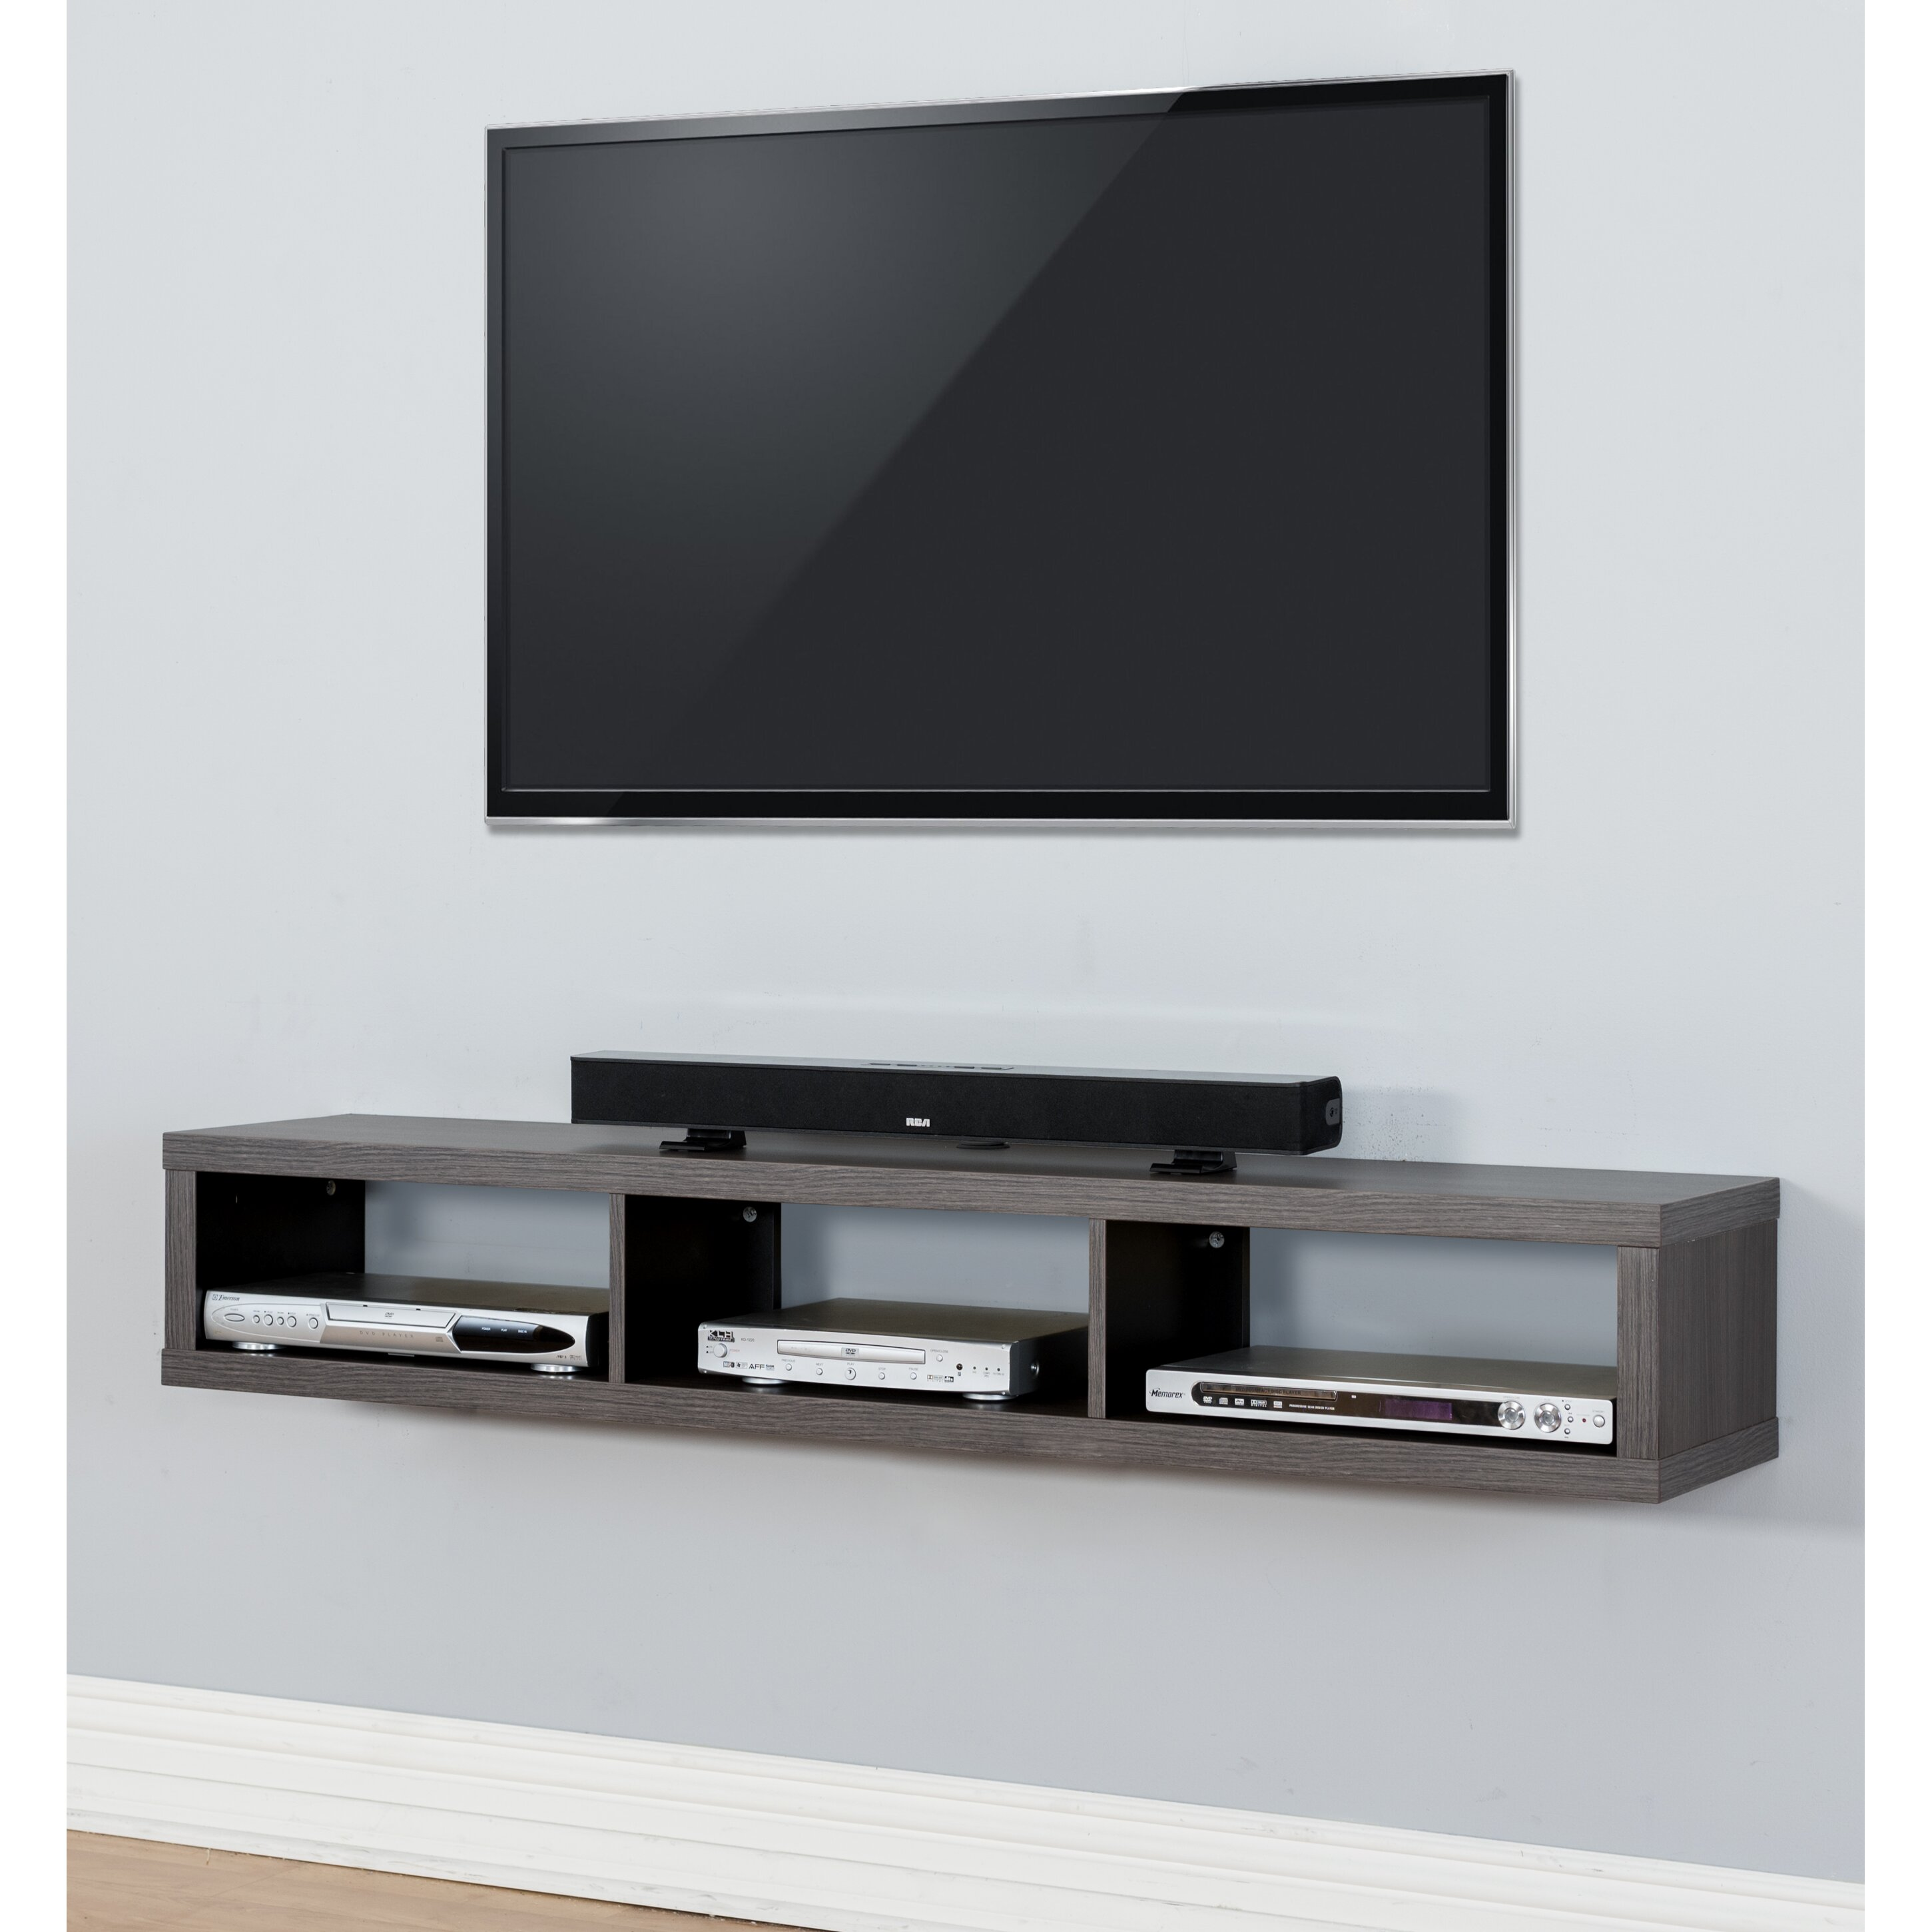 60 quot shallow wall mounted tv component shelf by martin home furnishings